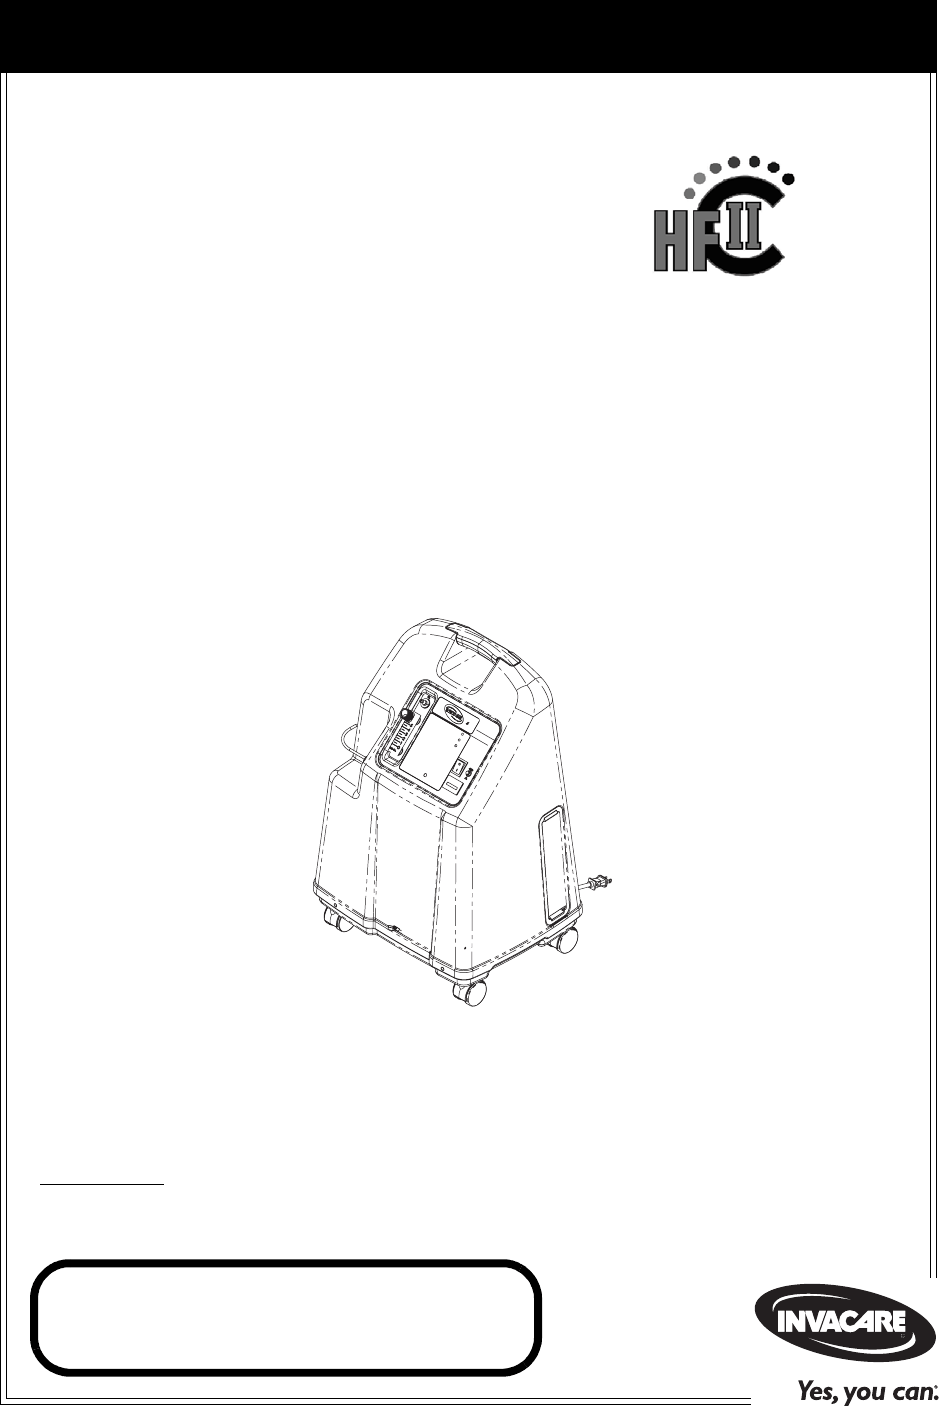 Invacare Respiratory Product IRC5LX User Guide